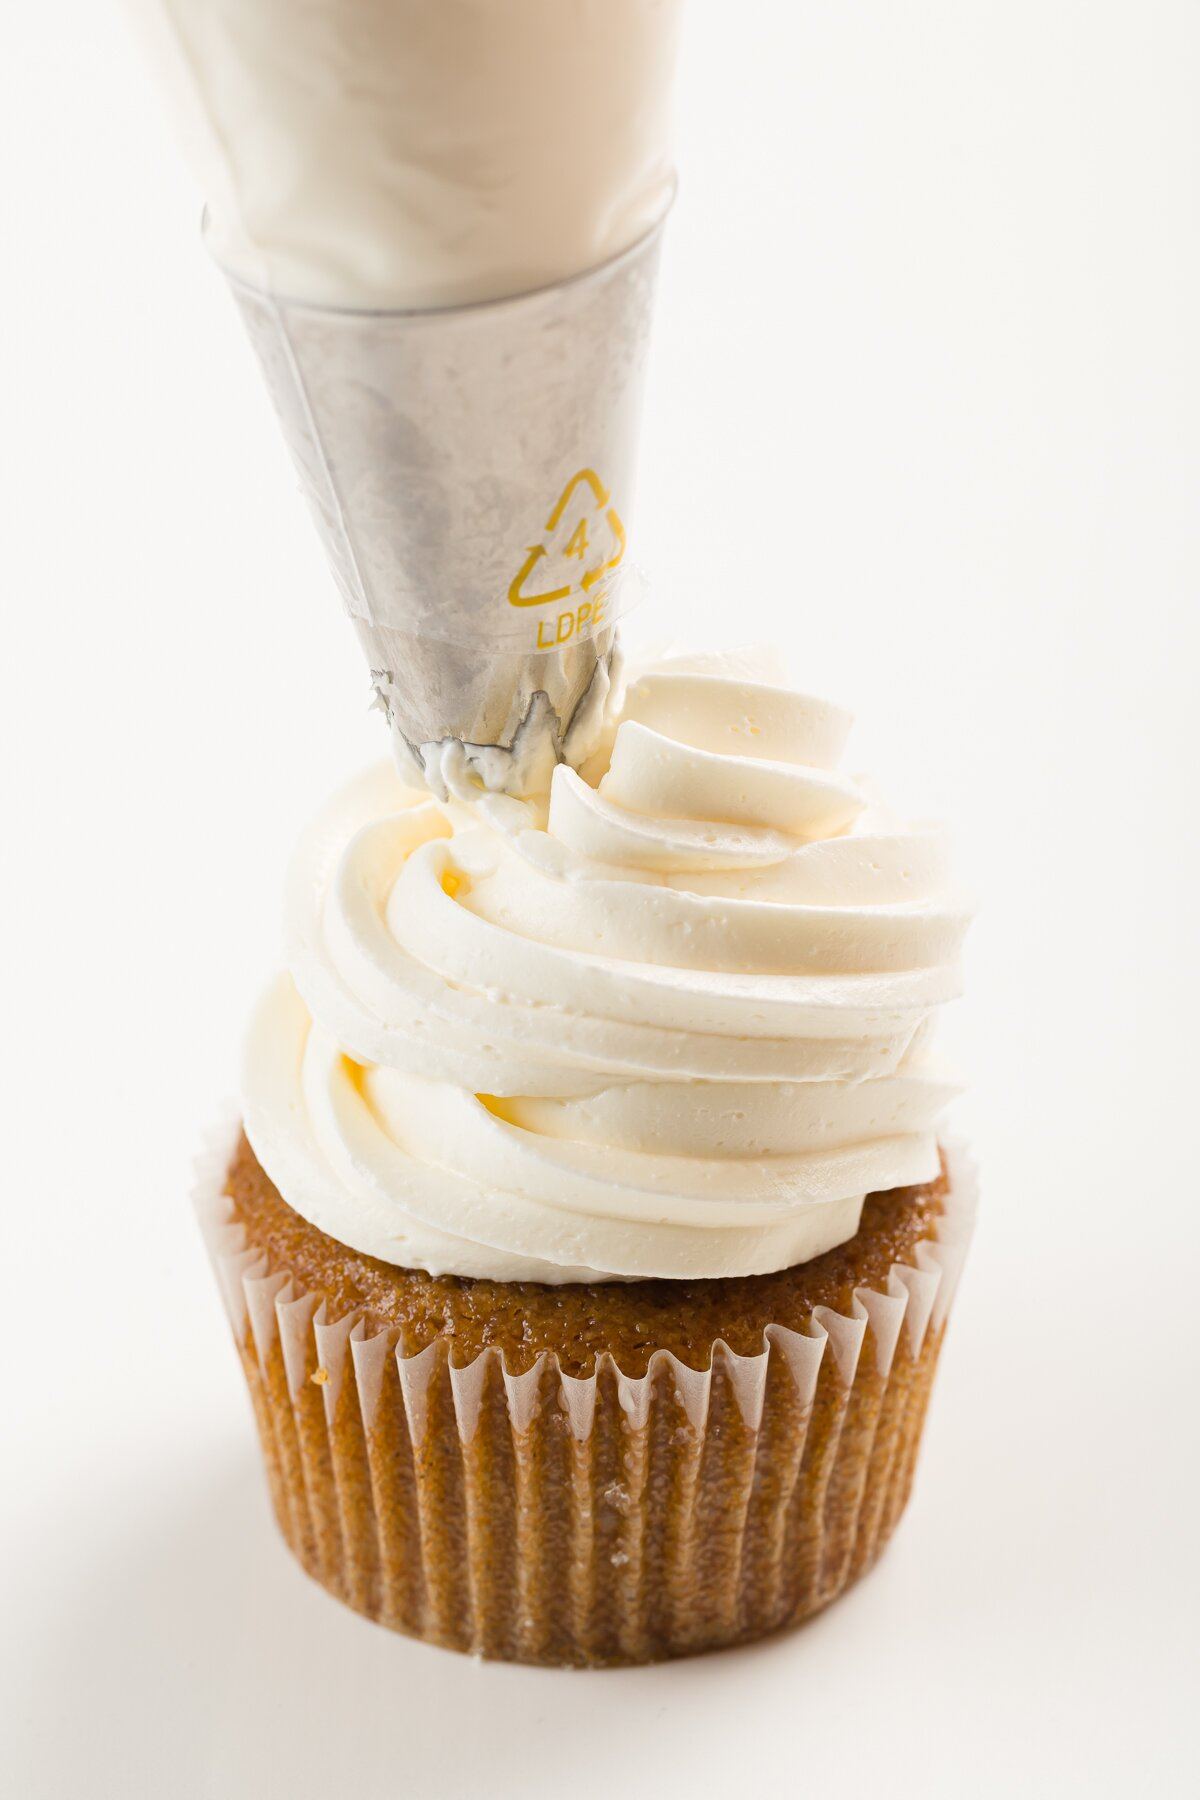 Italian meringue buttercream frosting being piped onto a cupcake